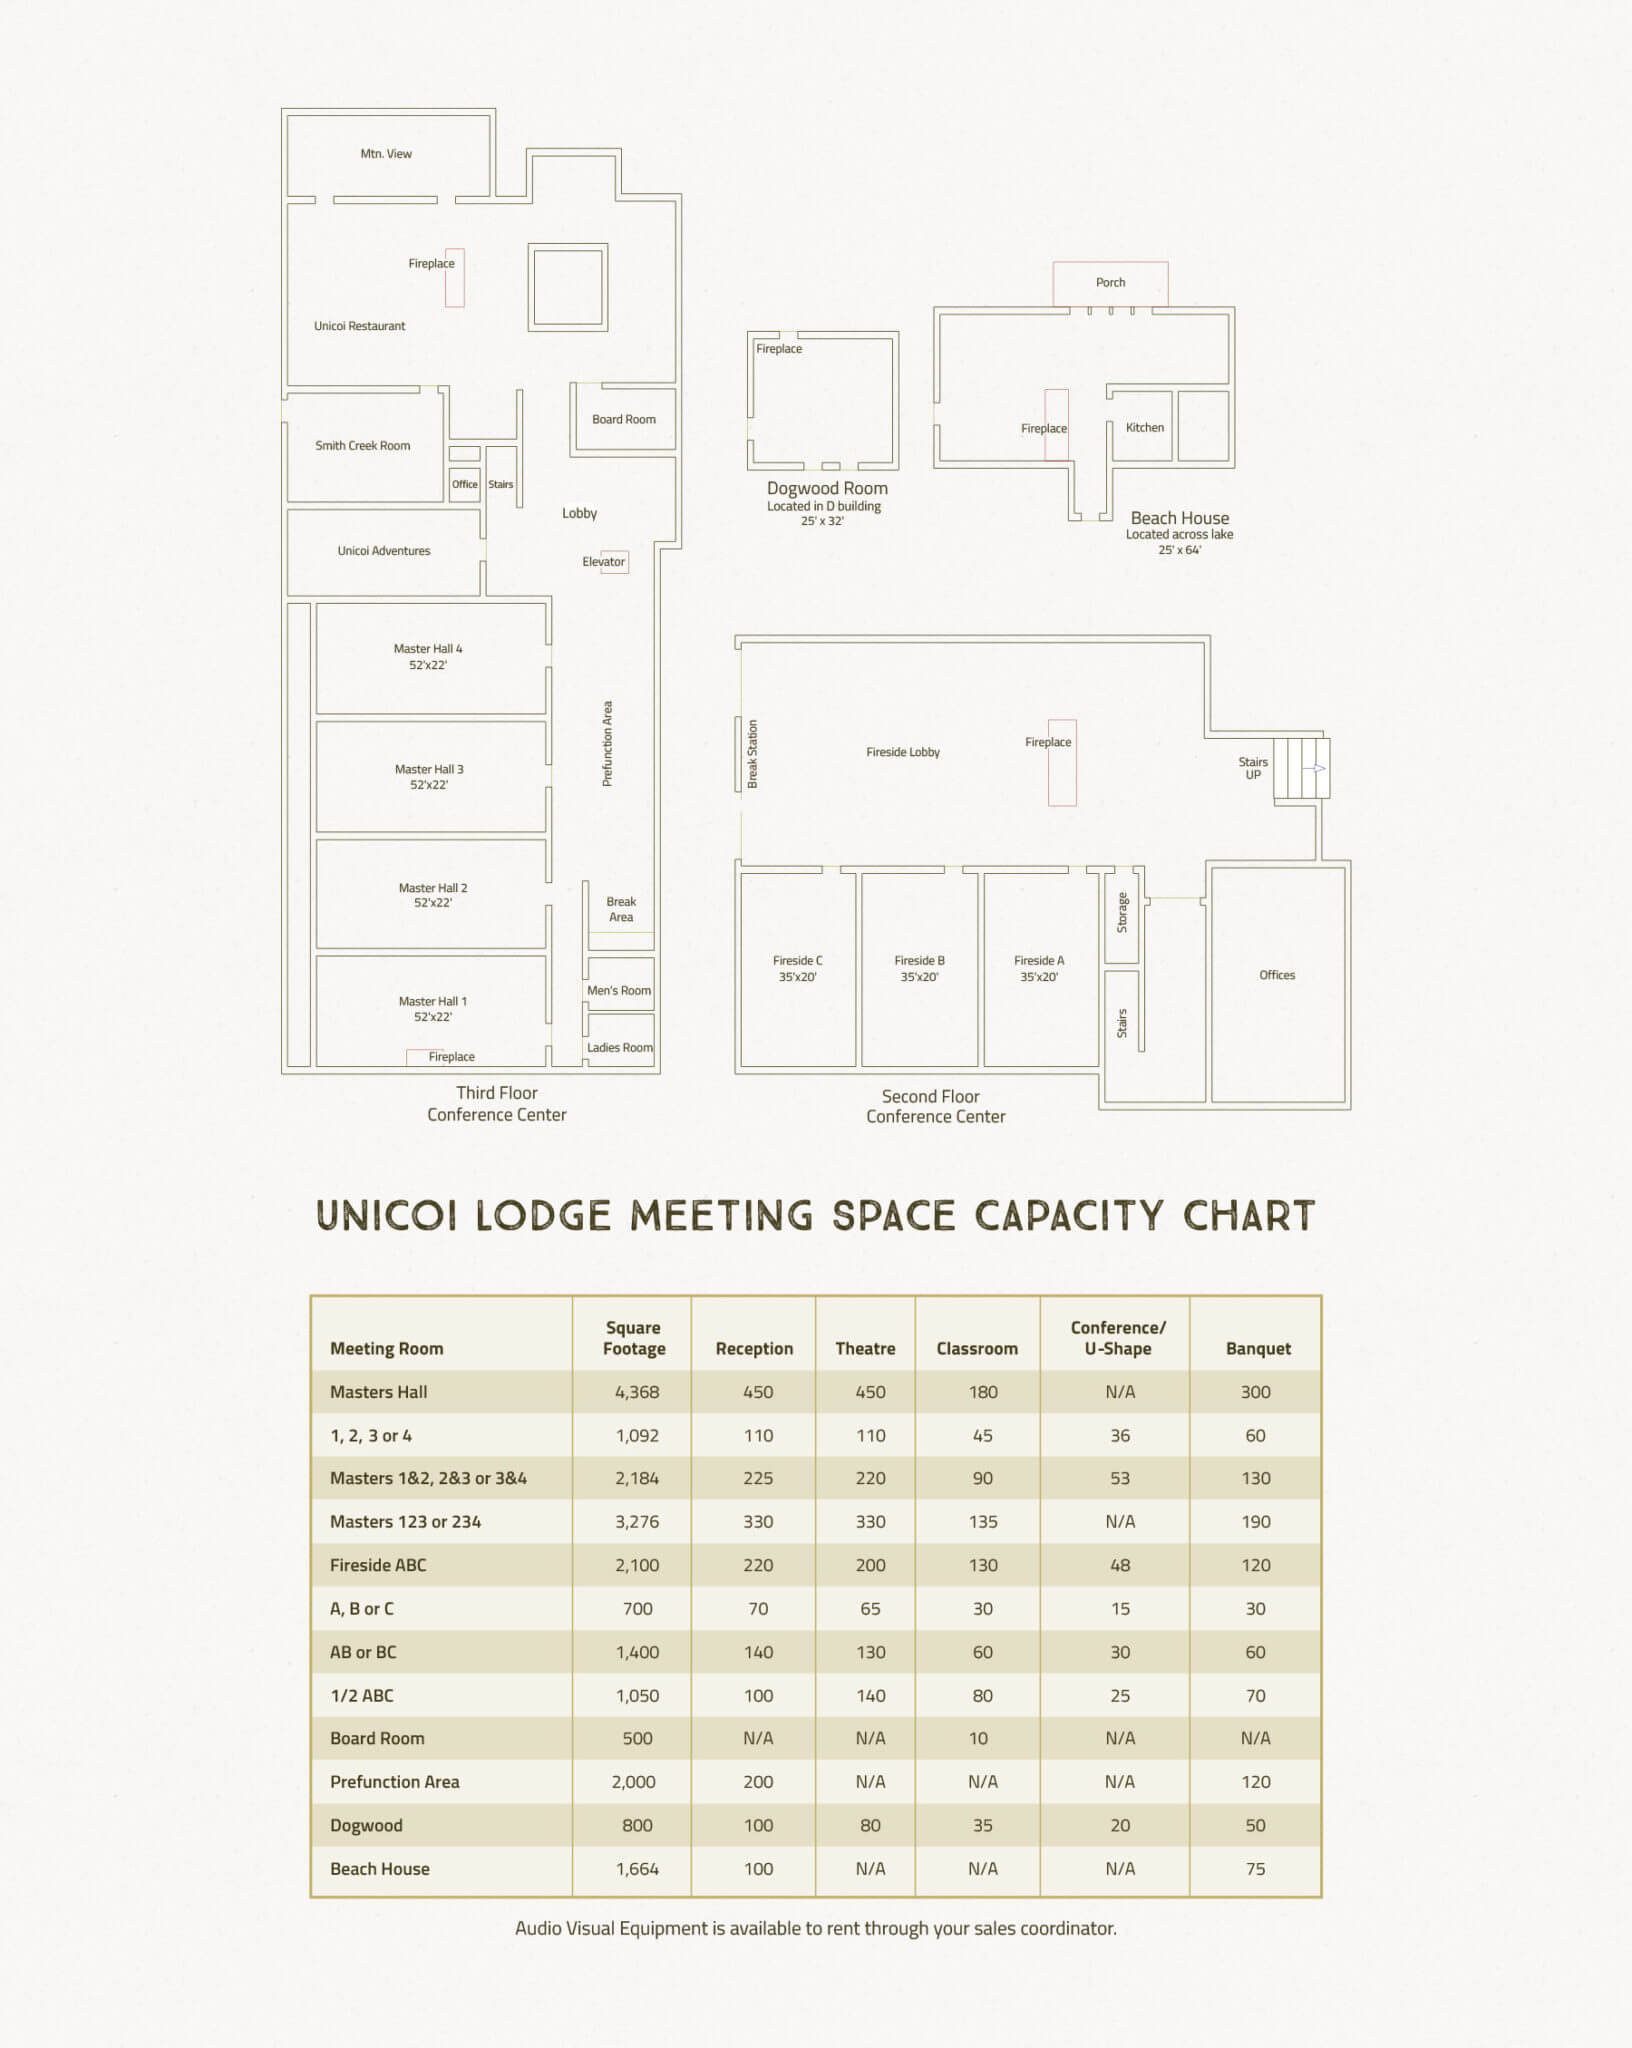 Unicoi Lodge Meeting Events Facilities Capacity Chart 2